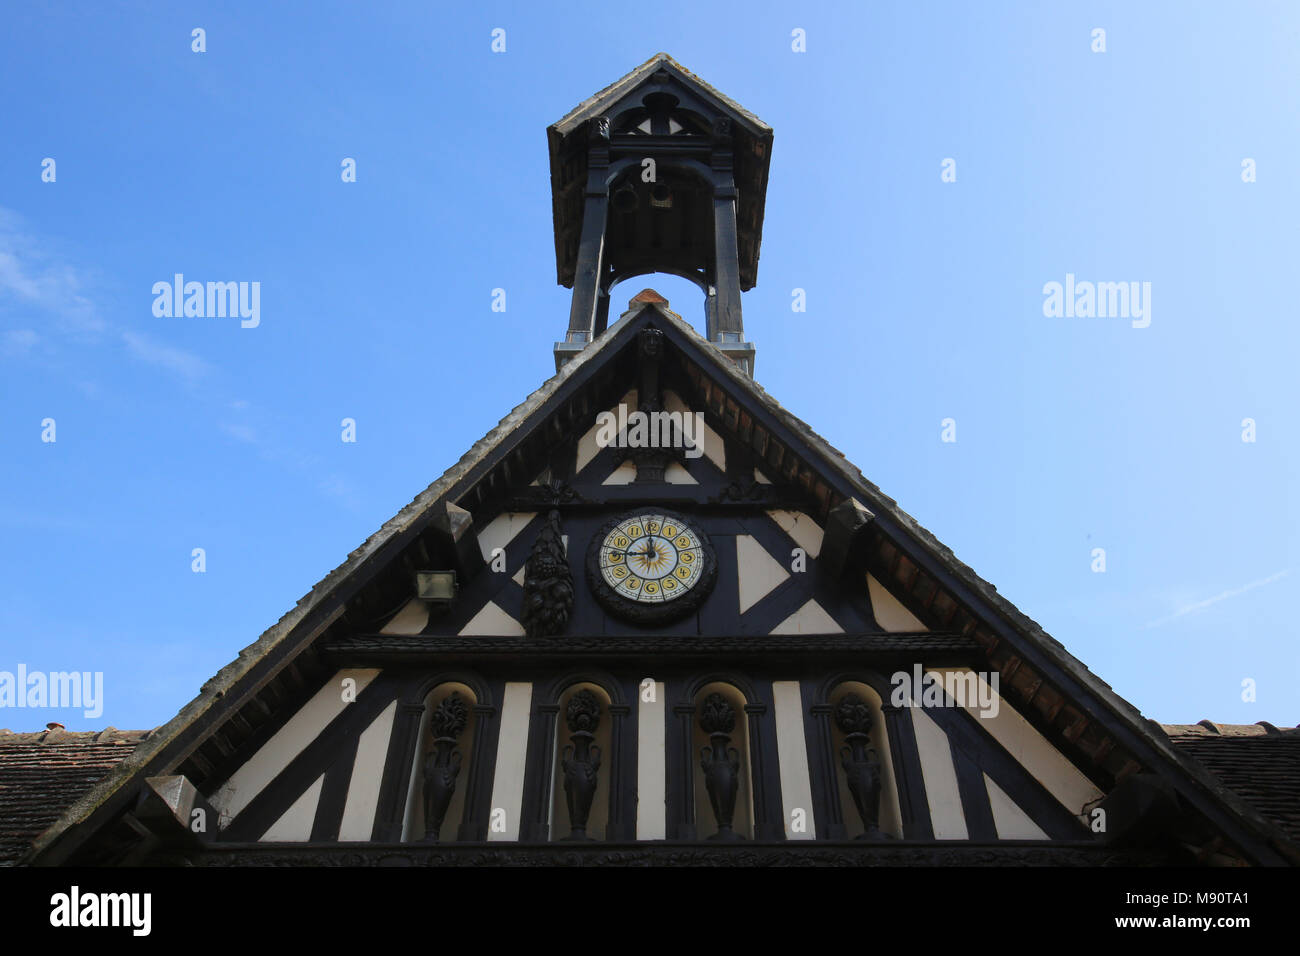 Arts and craft village in Dives sur Mer, France. Architectural detail. - Stock Image